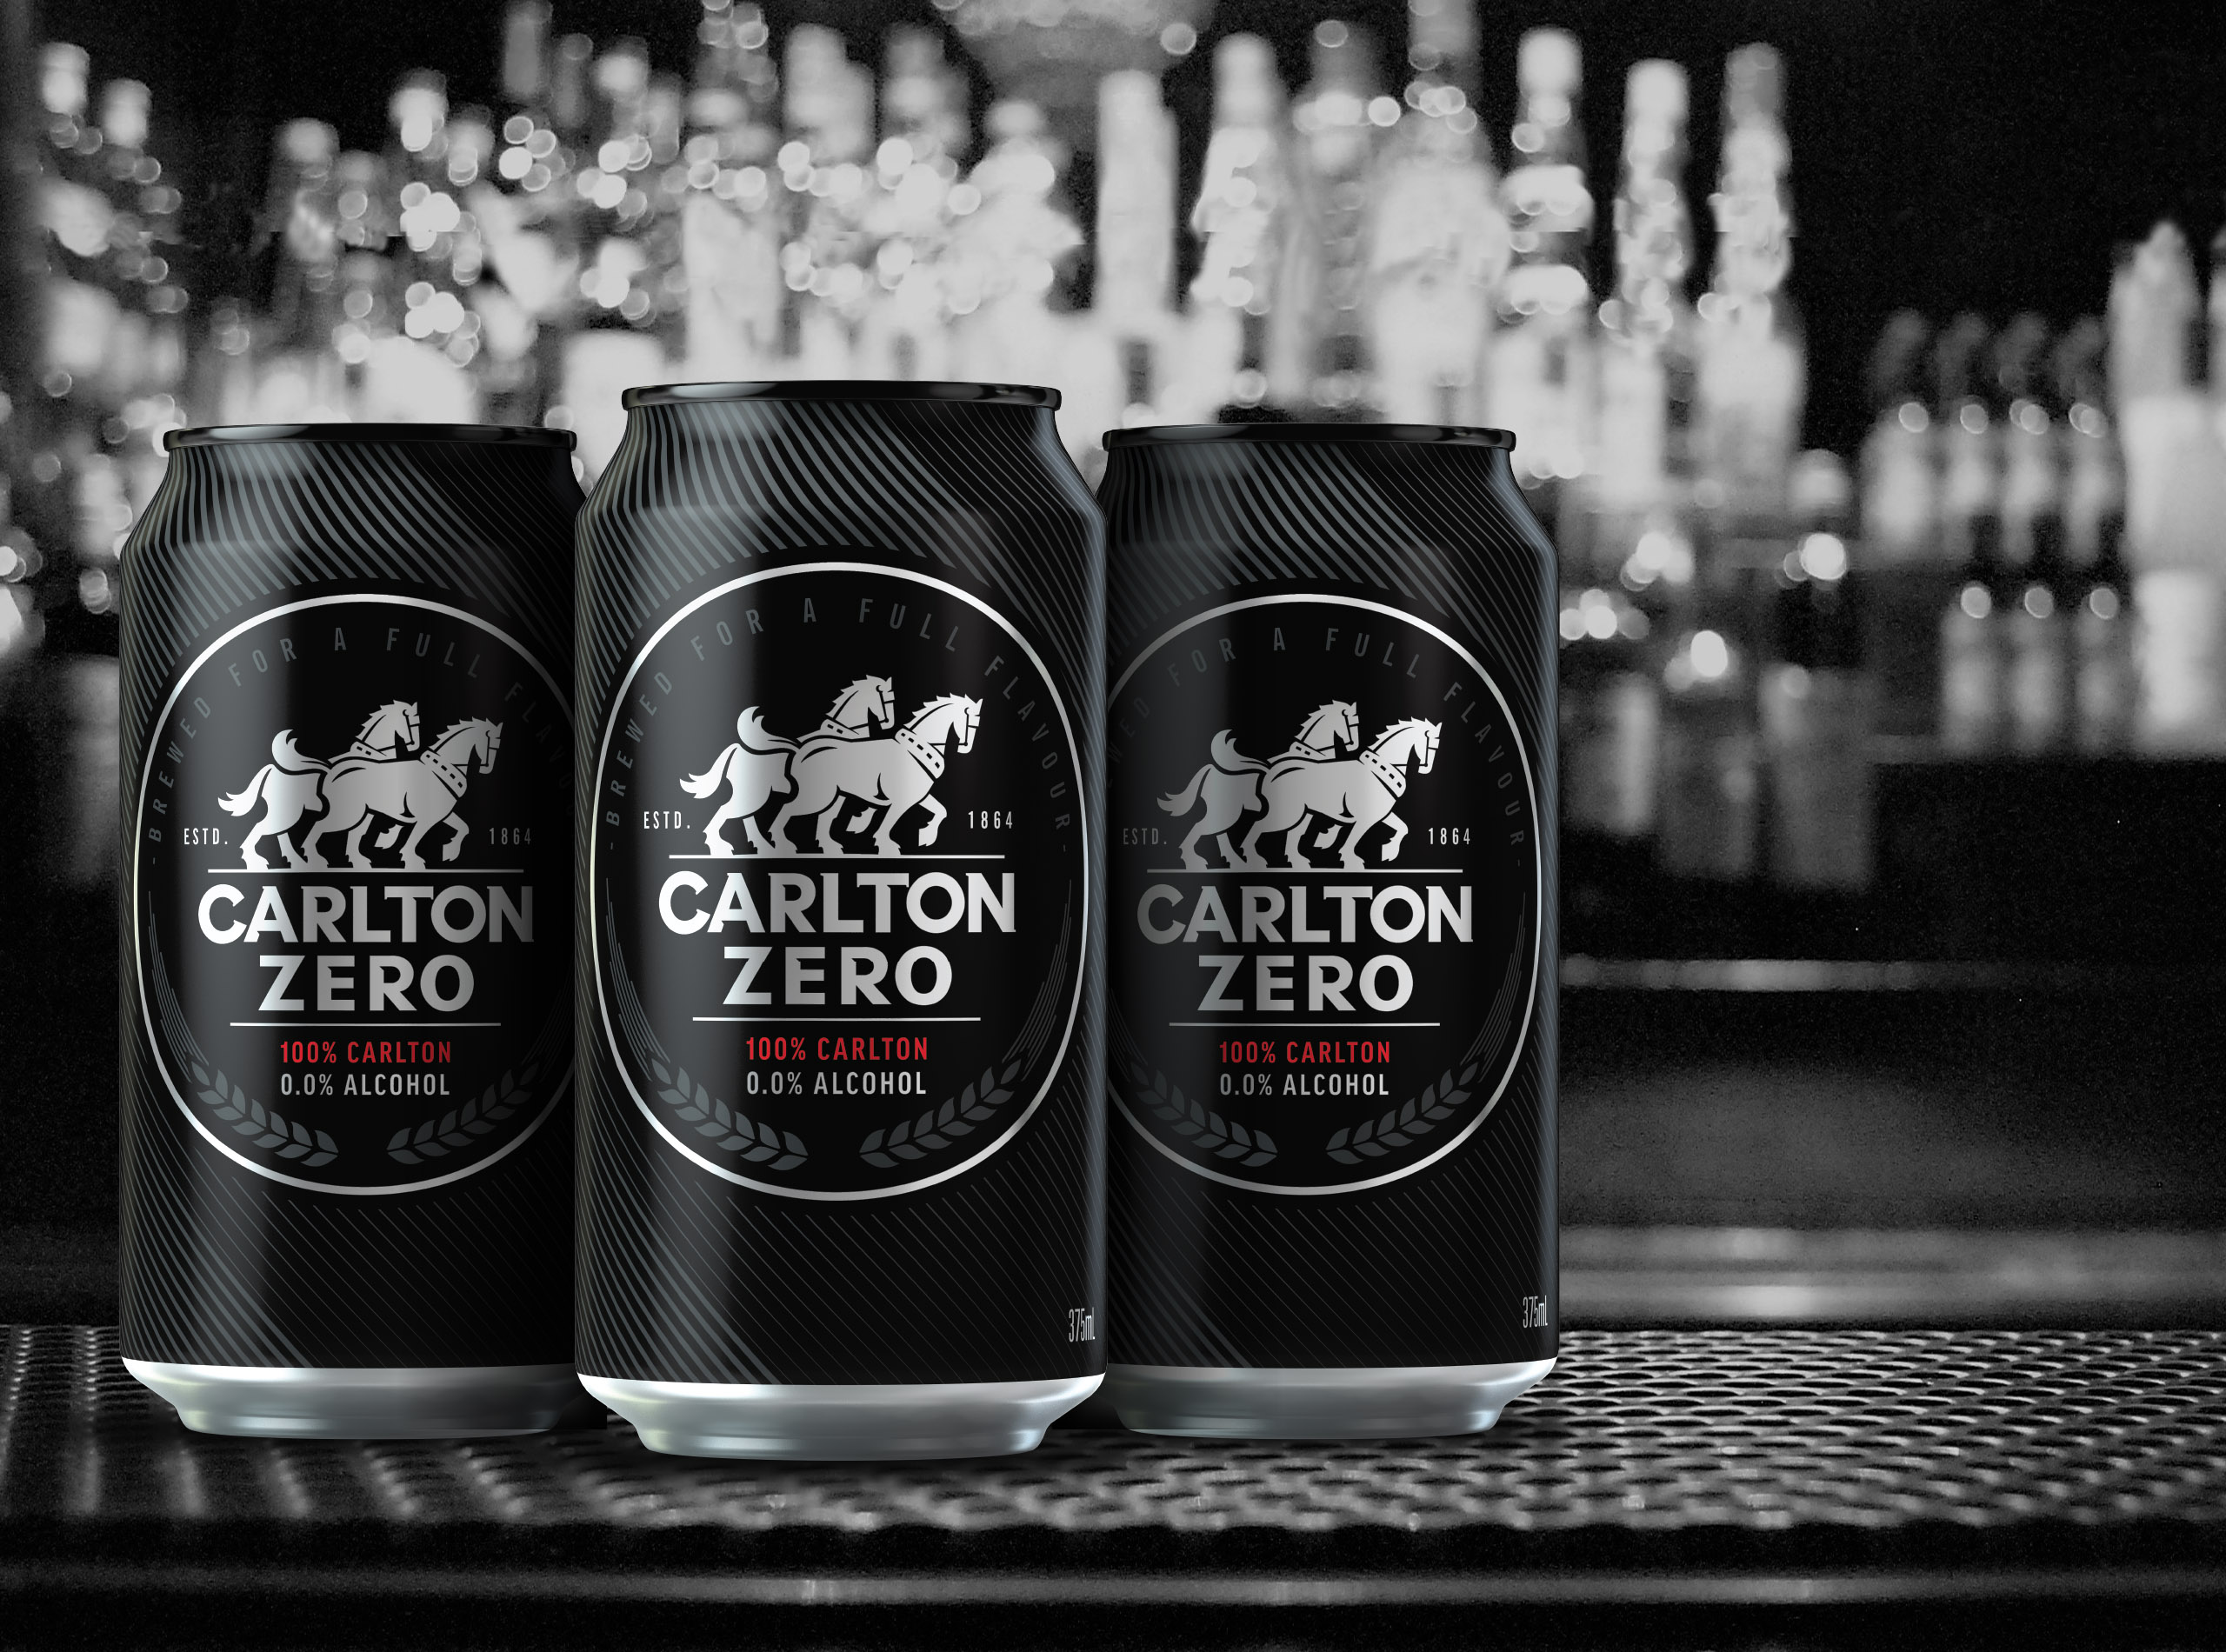 Carlton zero at bar